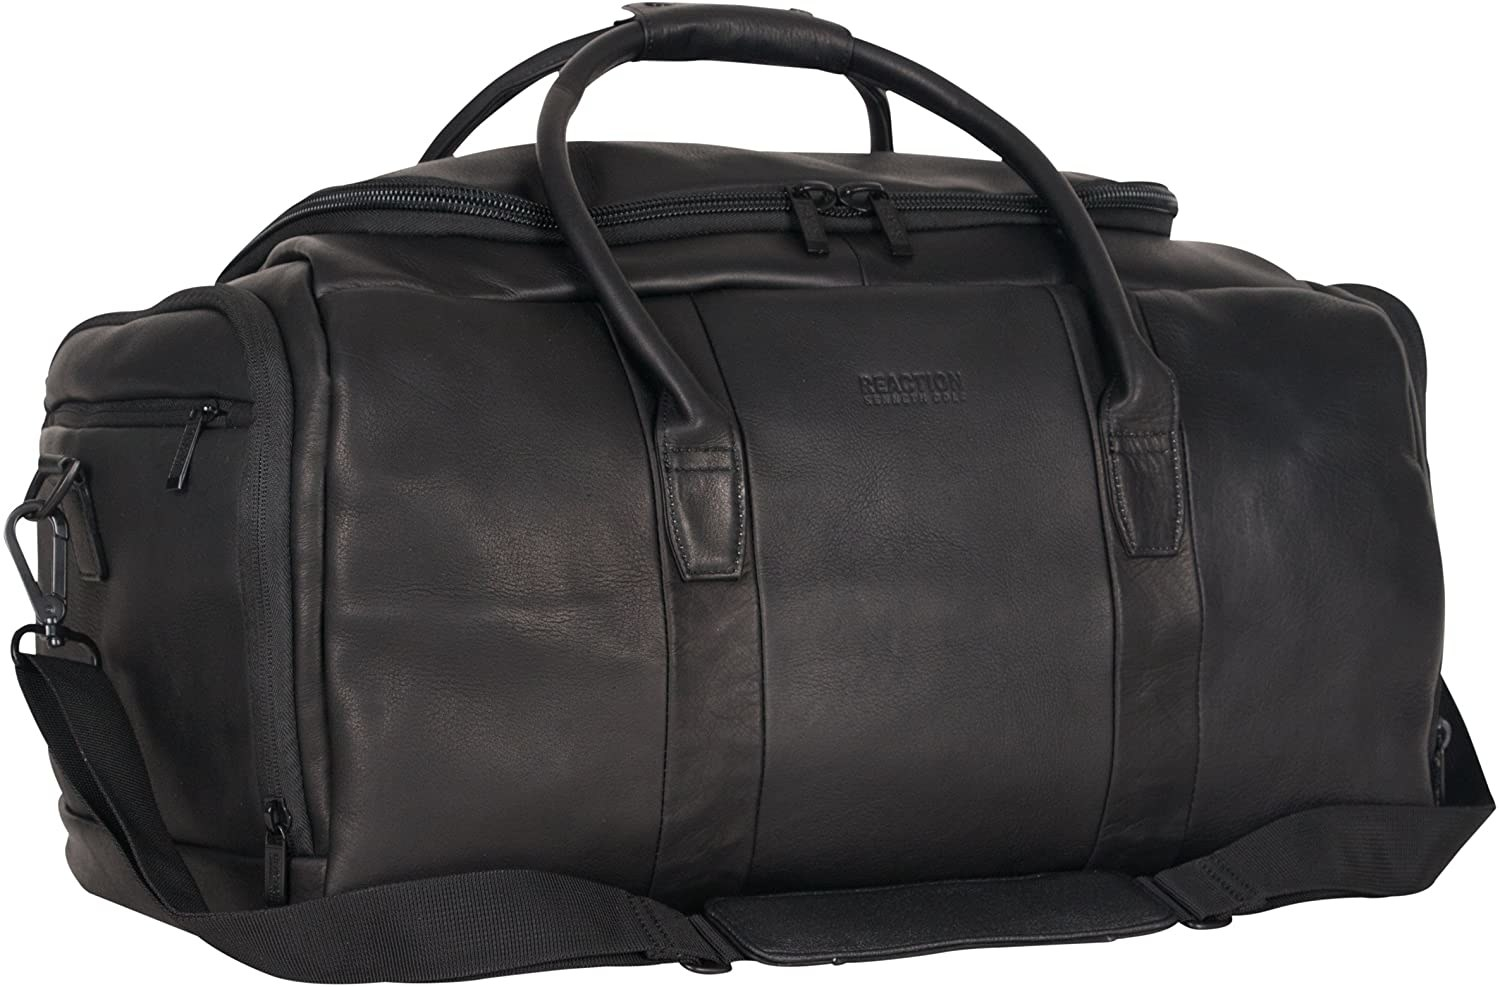 A large leather duffel bag with many pockets is shown against a plain background